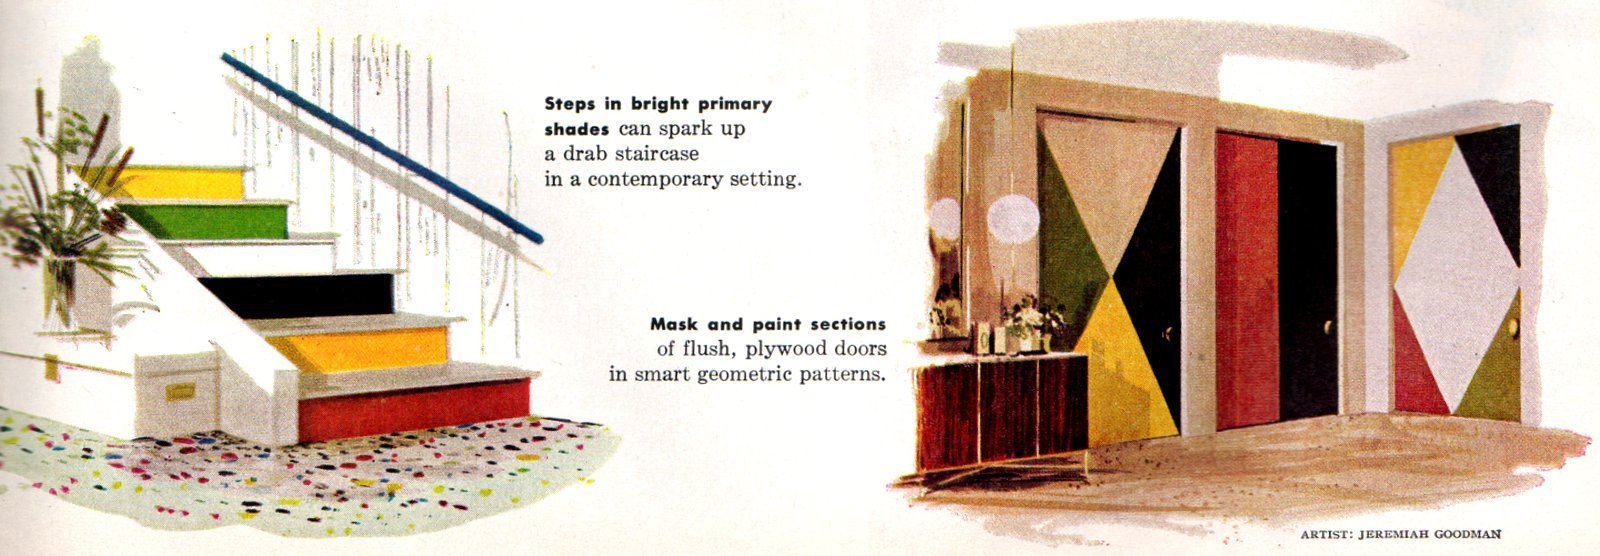 Small painted home accents - Home design and decor from the fifties